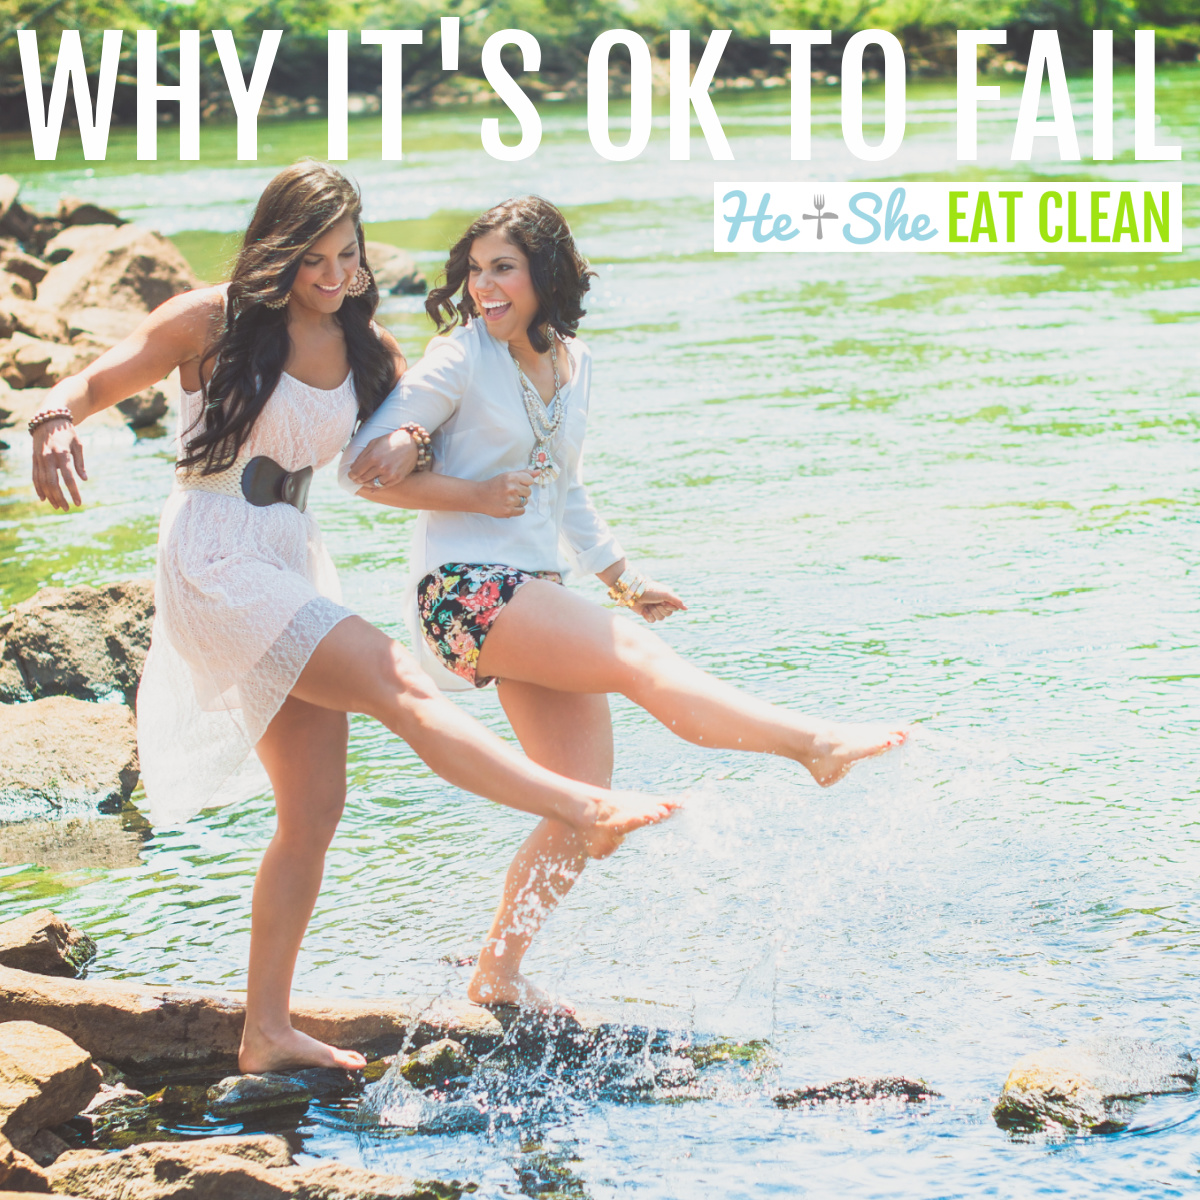 two females kicking water with their feet . text reads why it's ok to fail